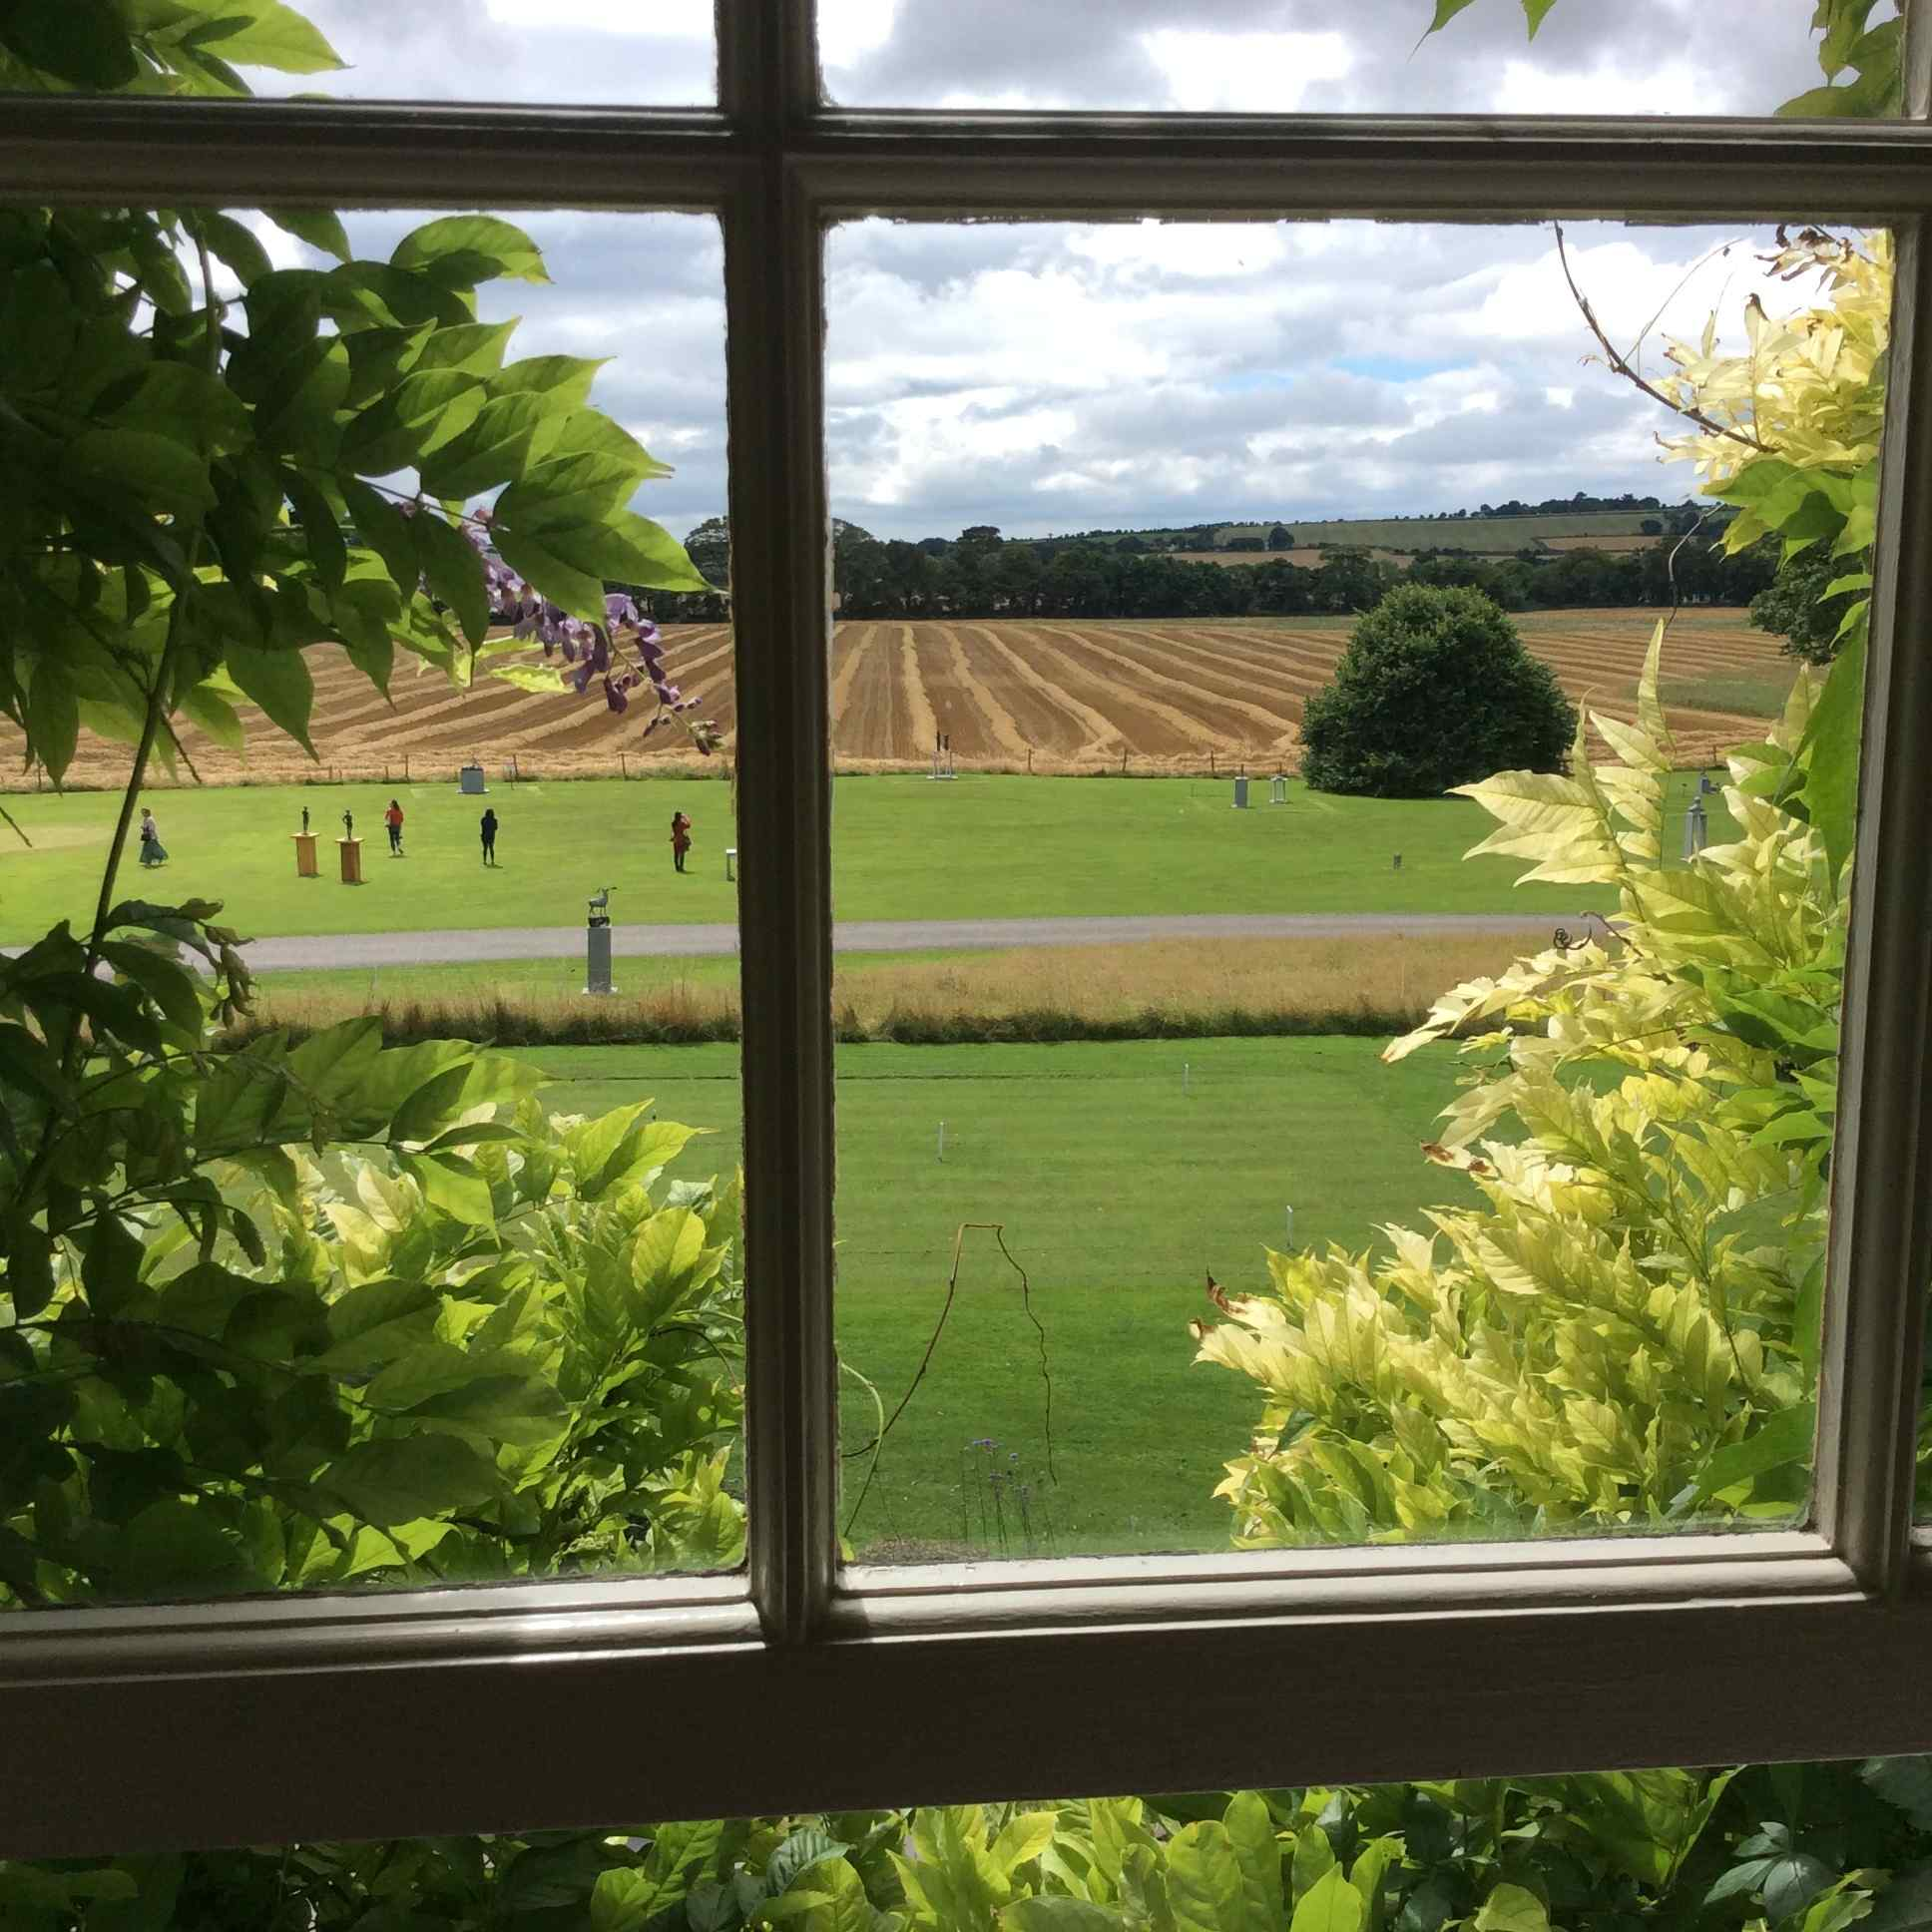 Guest blog: A room with a view - Chloe aged 15